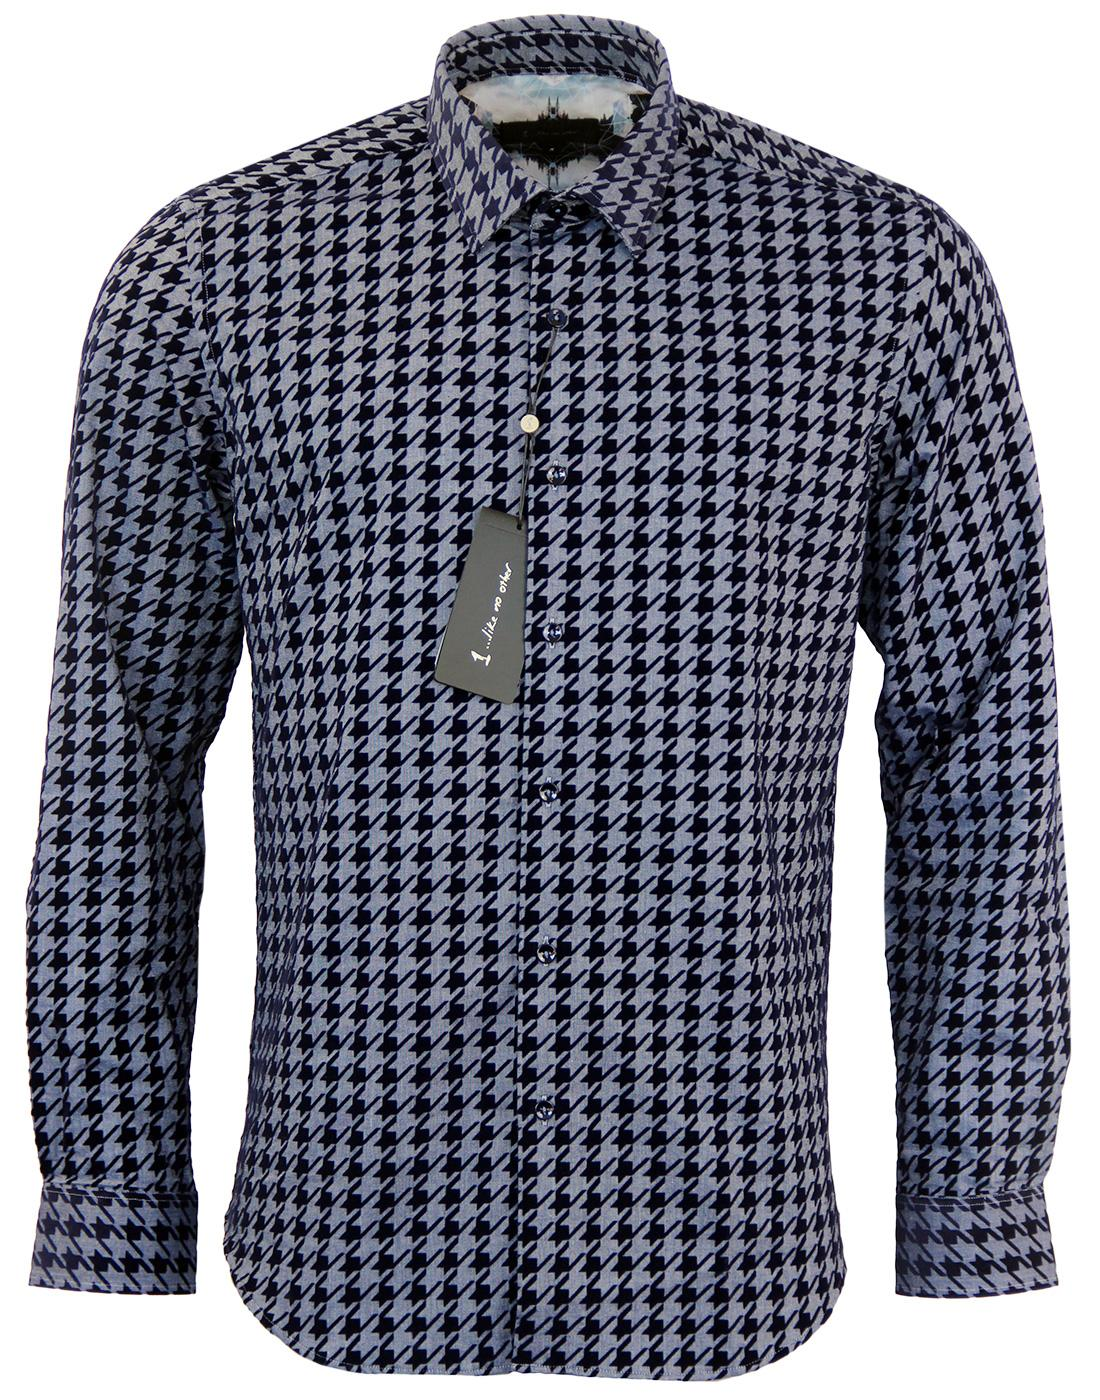 Circuit 1 LIKE NO OTHER Mod Dogtooth Flock Shirt